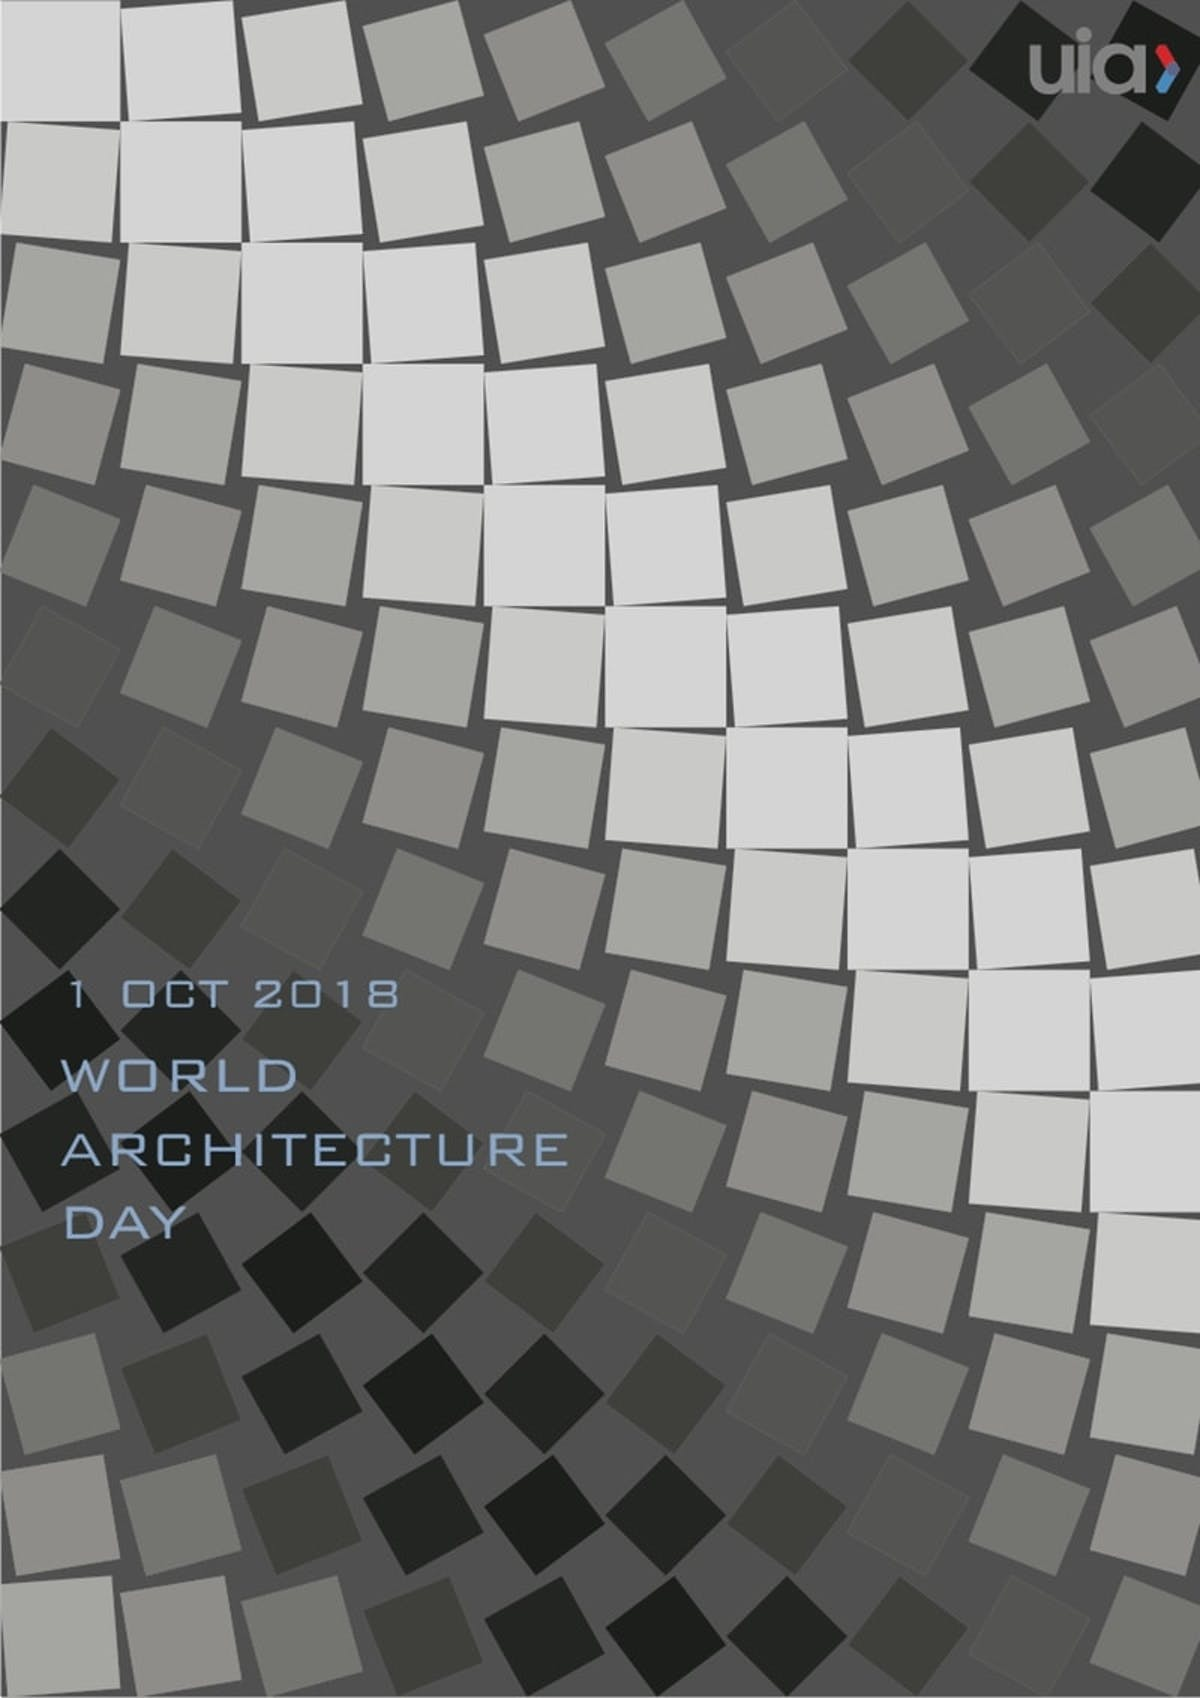 """Architecture... for a better world!"": Here is the official poster for 2018 World Architecture Day!"